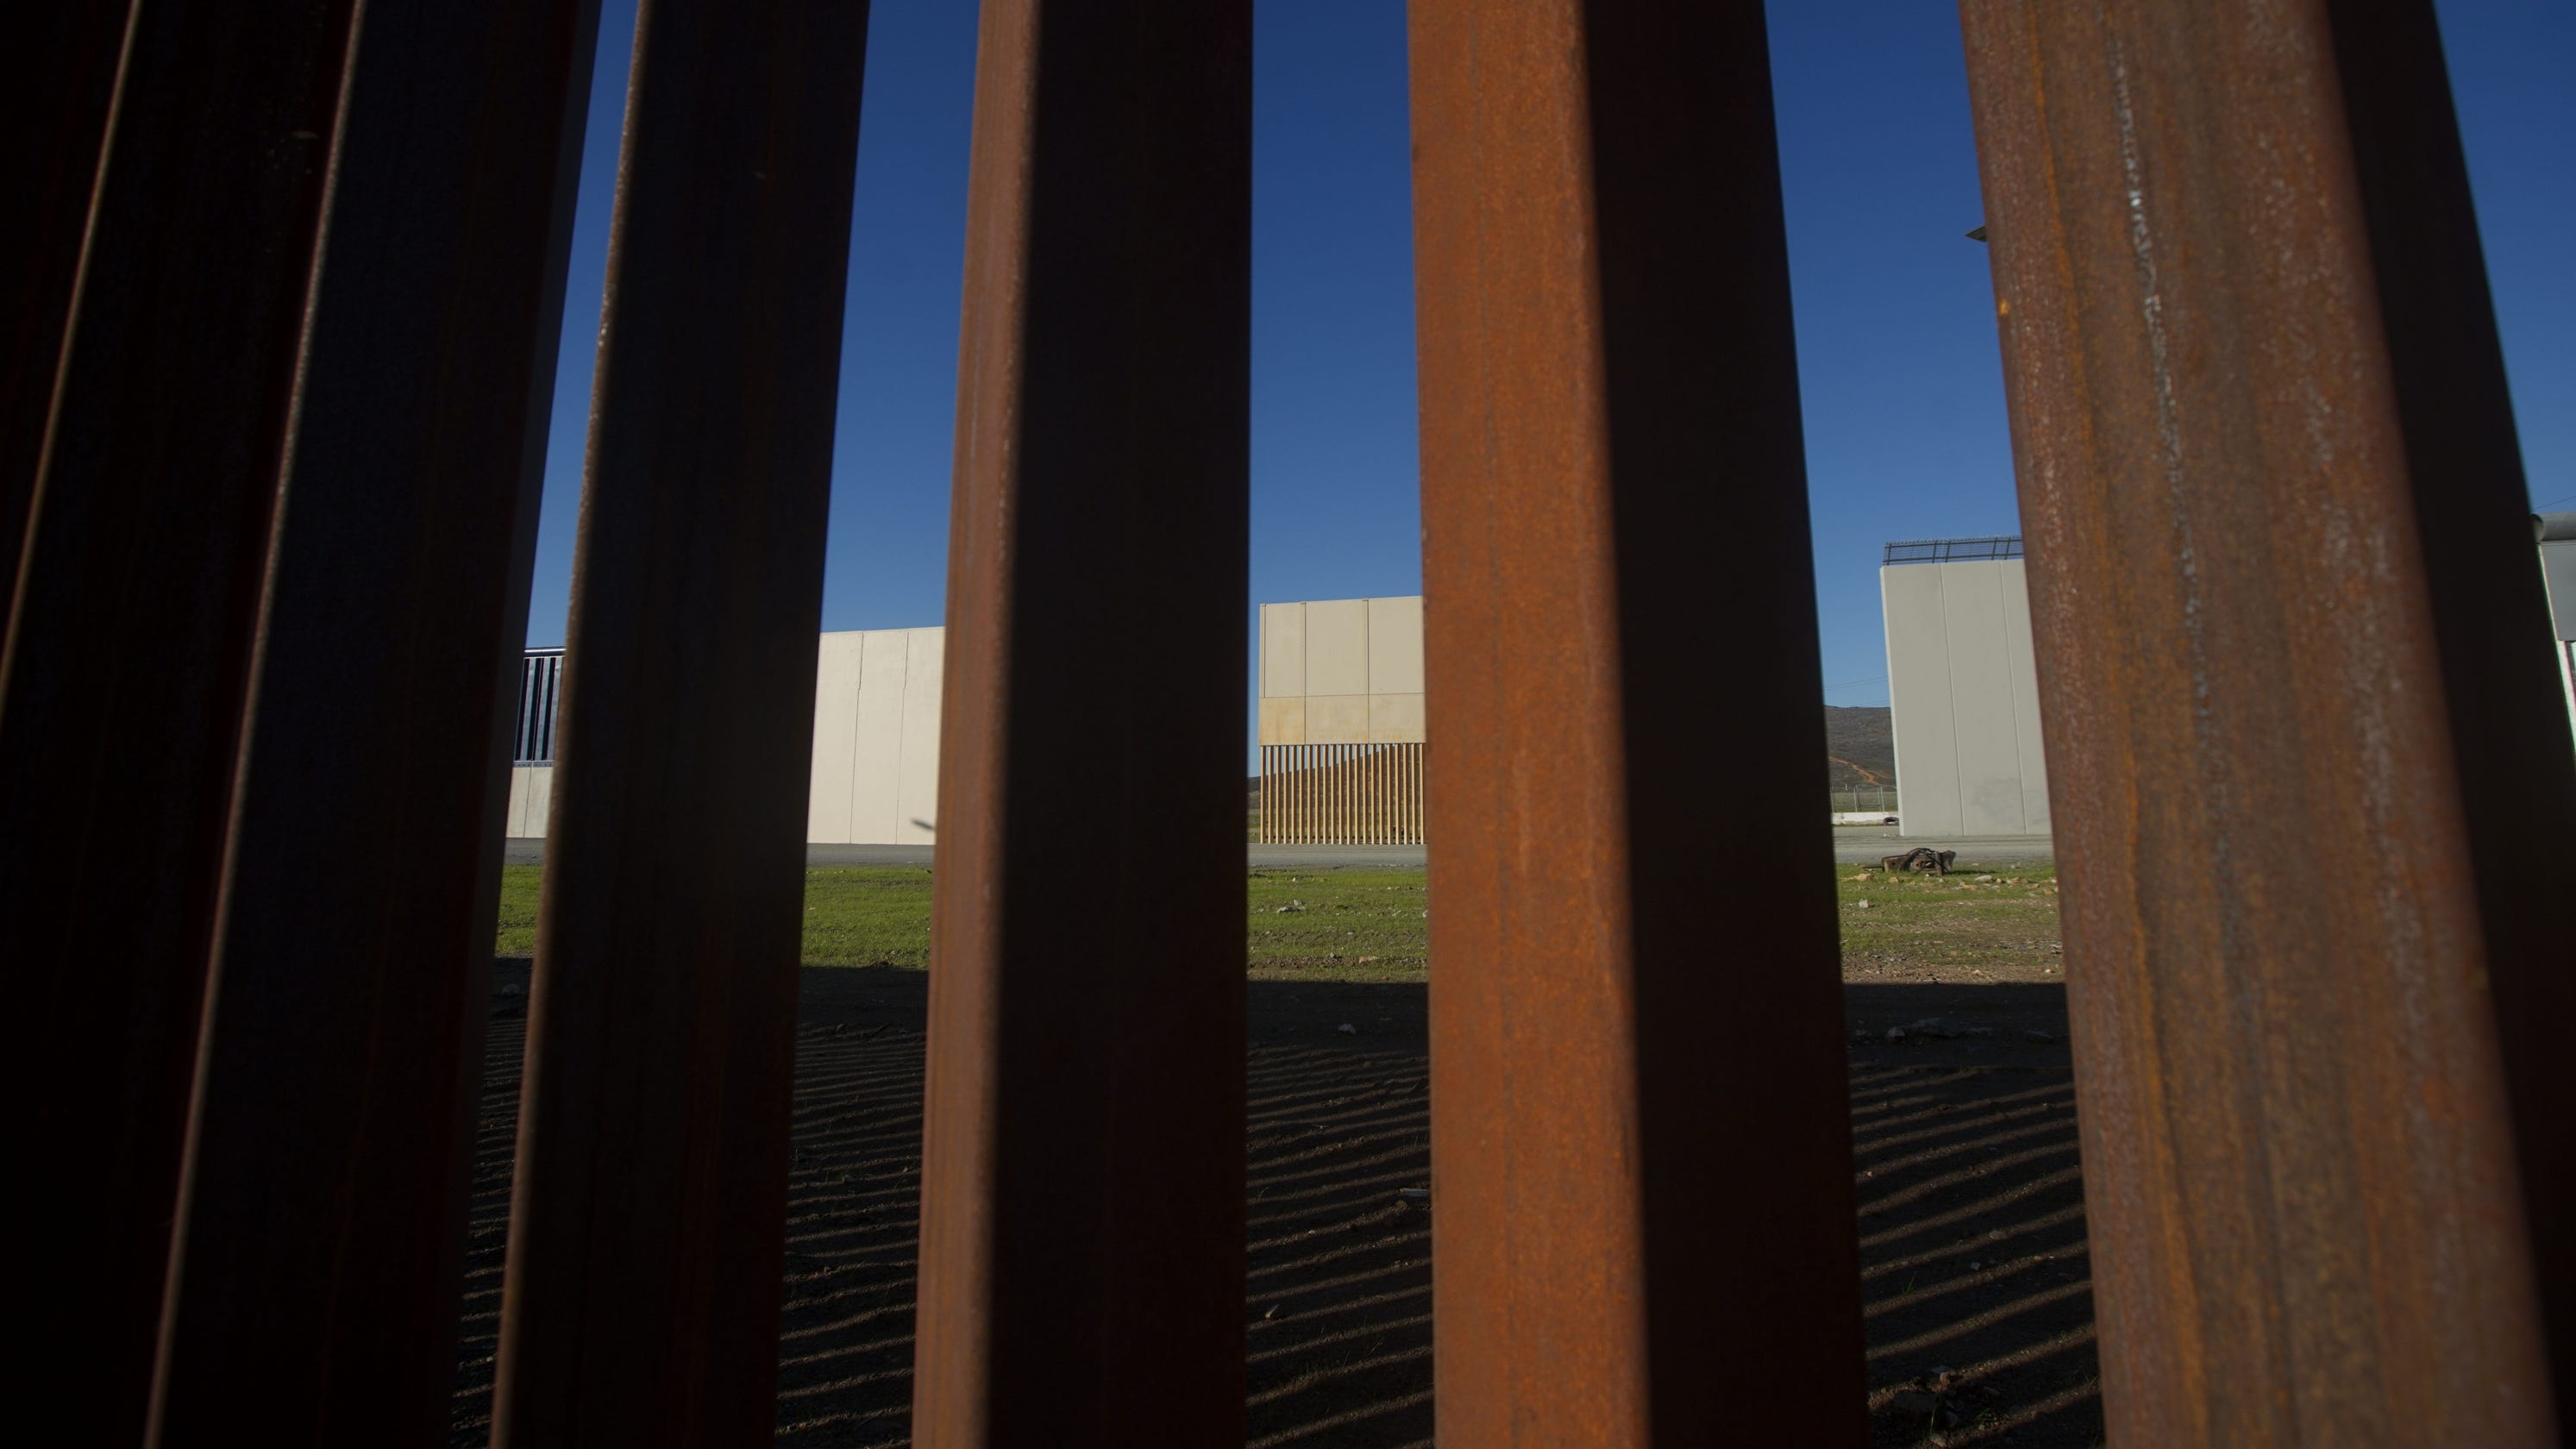 Sleet slat wall prototype sawed through in DHS test, report says